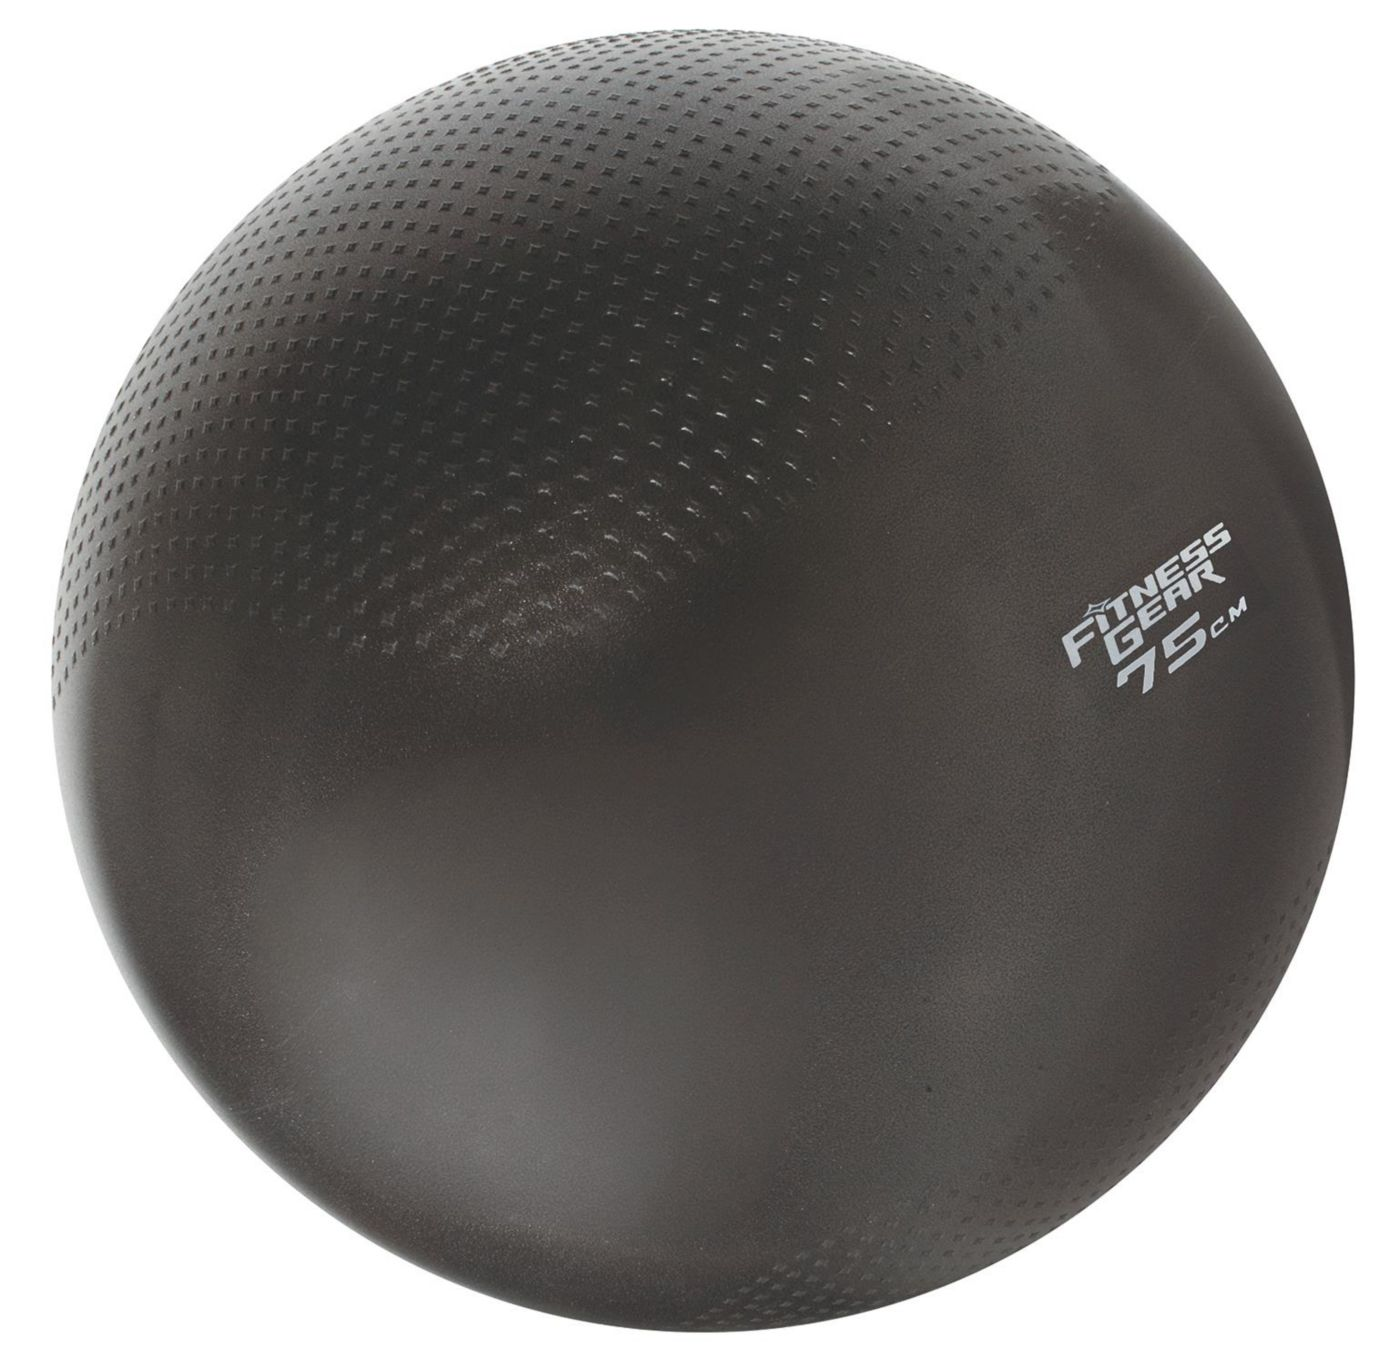 Fitness Gear 75 cm Weighted Stability Ball